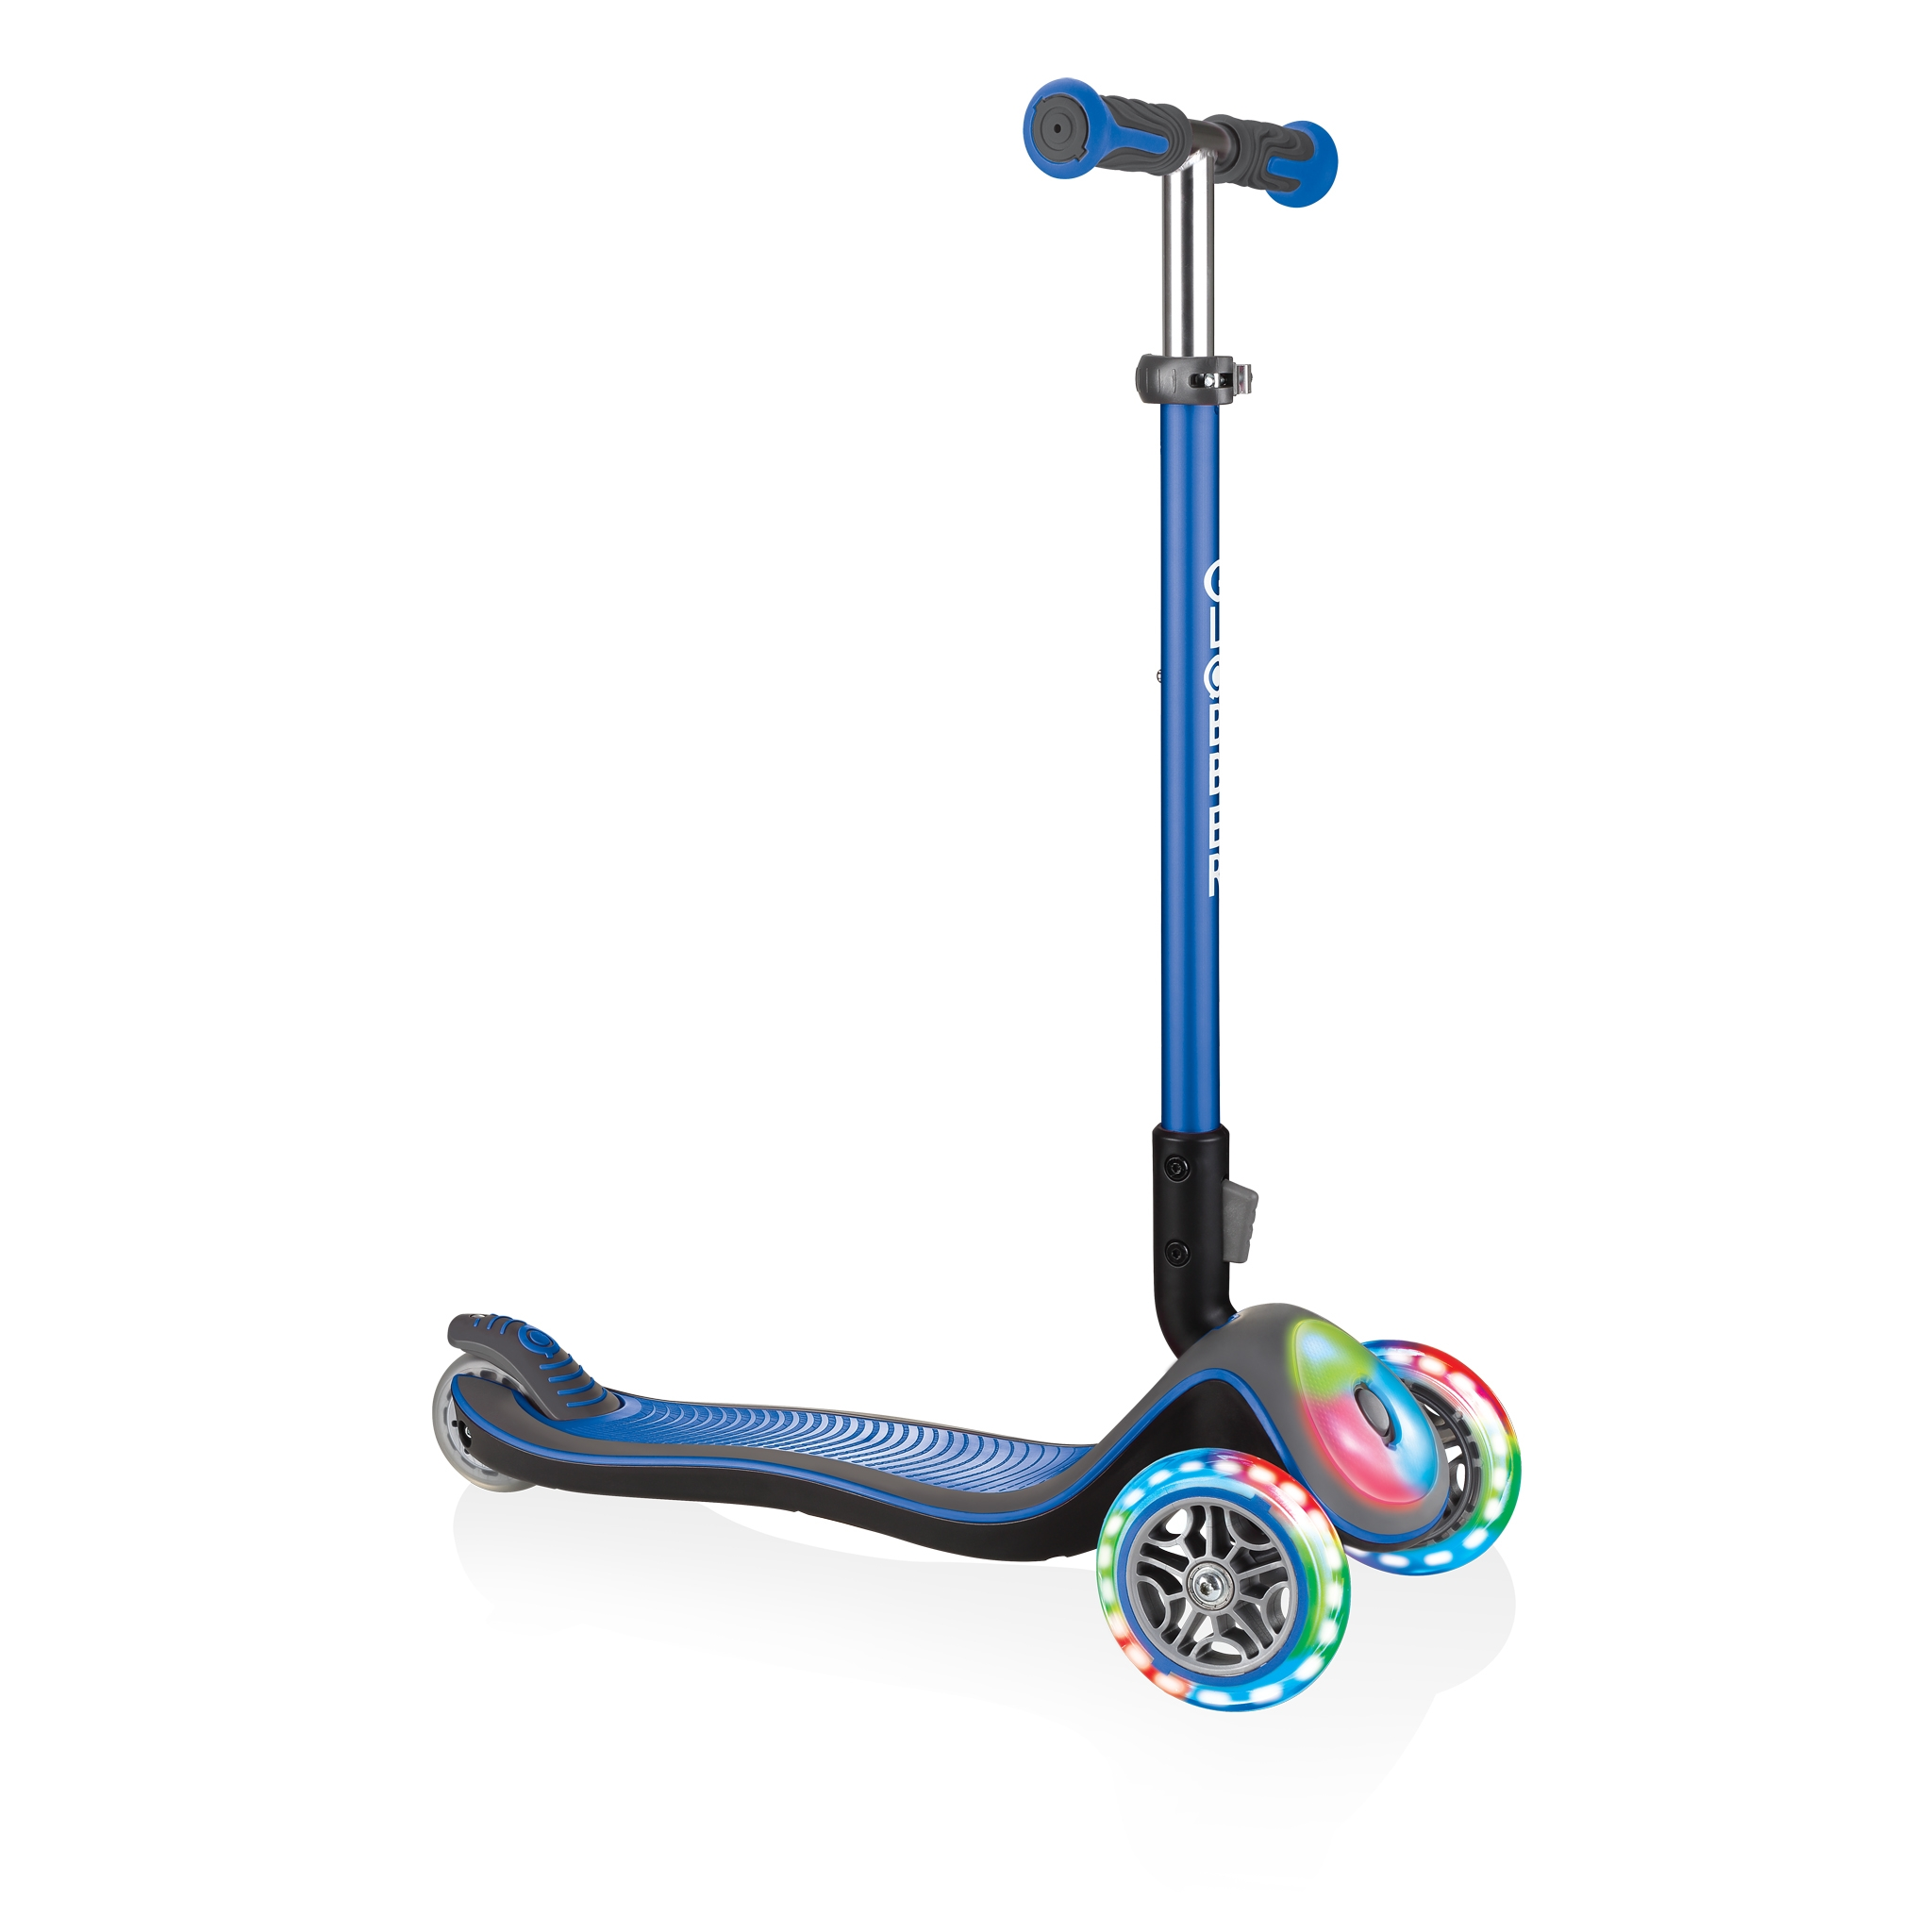 Globber-ELITE-DELUXE-FLASH-LIGHTS-3-wheel-light-up-scooter-for-kids-aged-3+-navy-blue 0